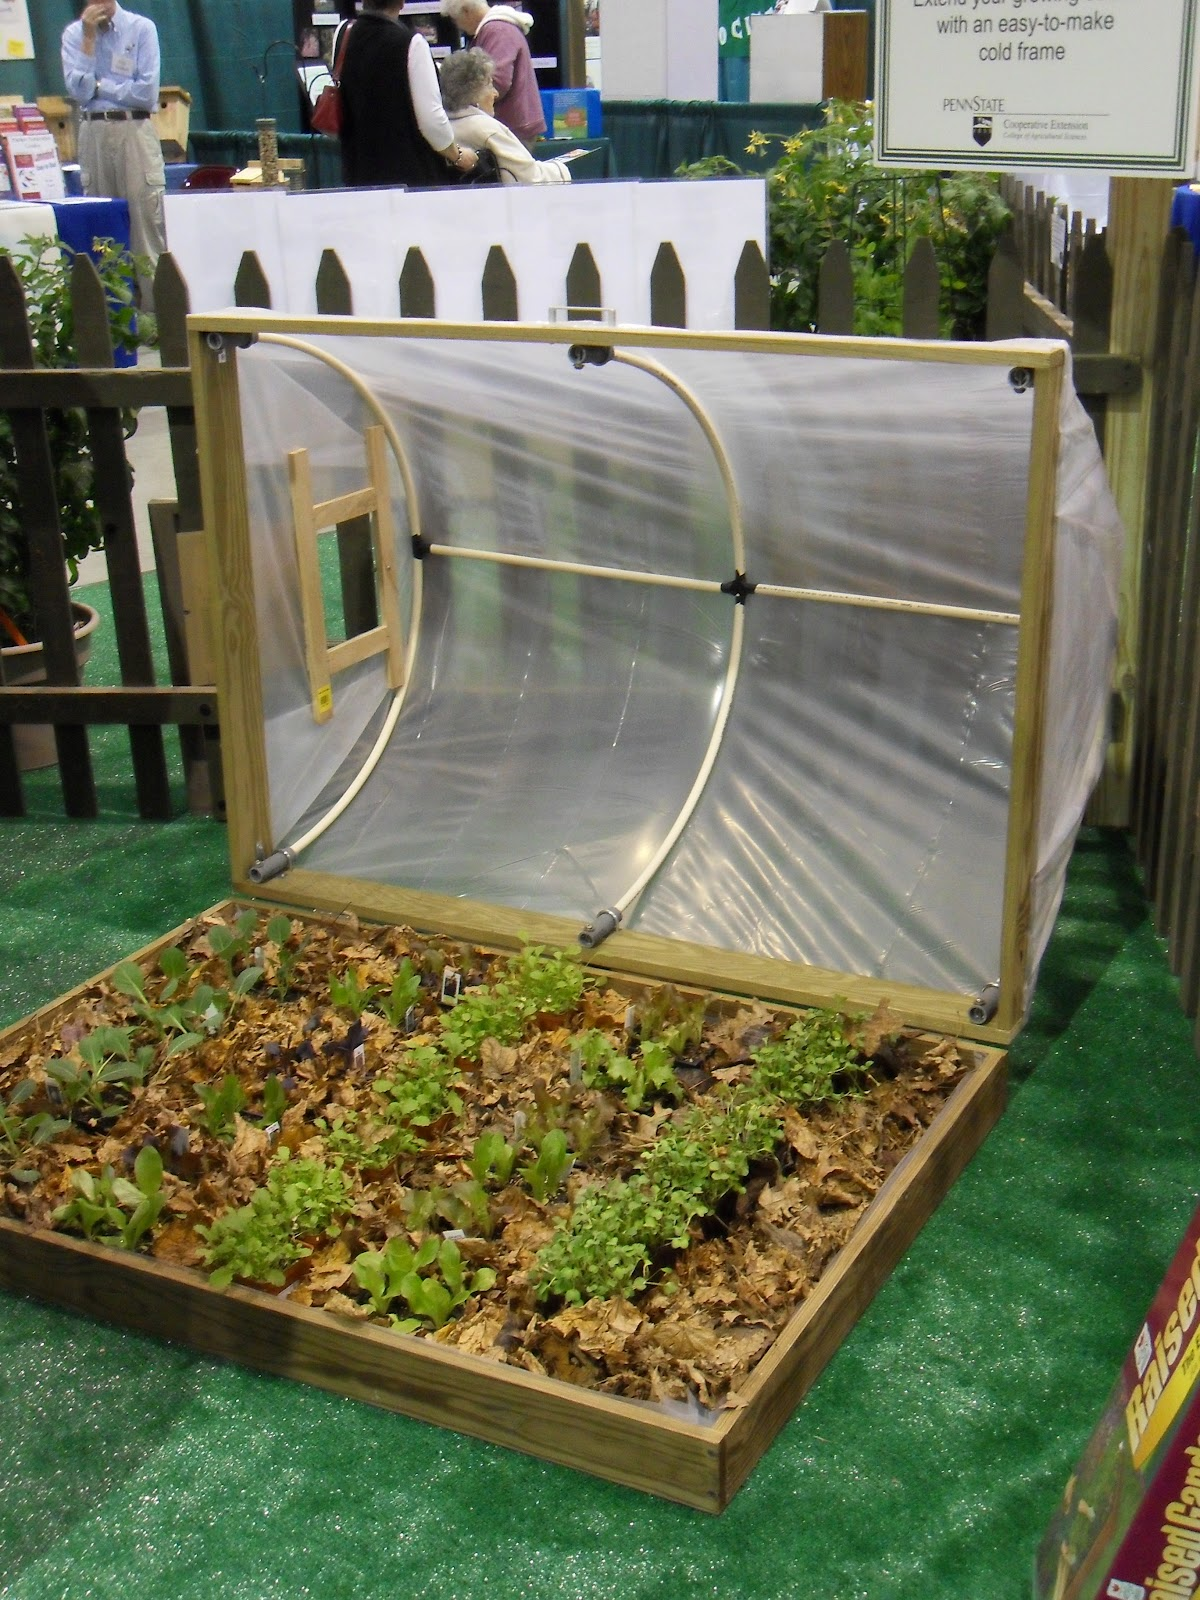 Danger Garden: Minigreenhouses Or Raised Beds? Both!  This Is So Cool!  Raised Bed, Minigreenhouse That Slides Open! How Awesome Is That!!